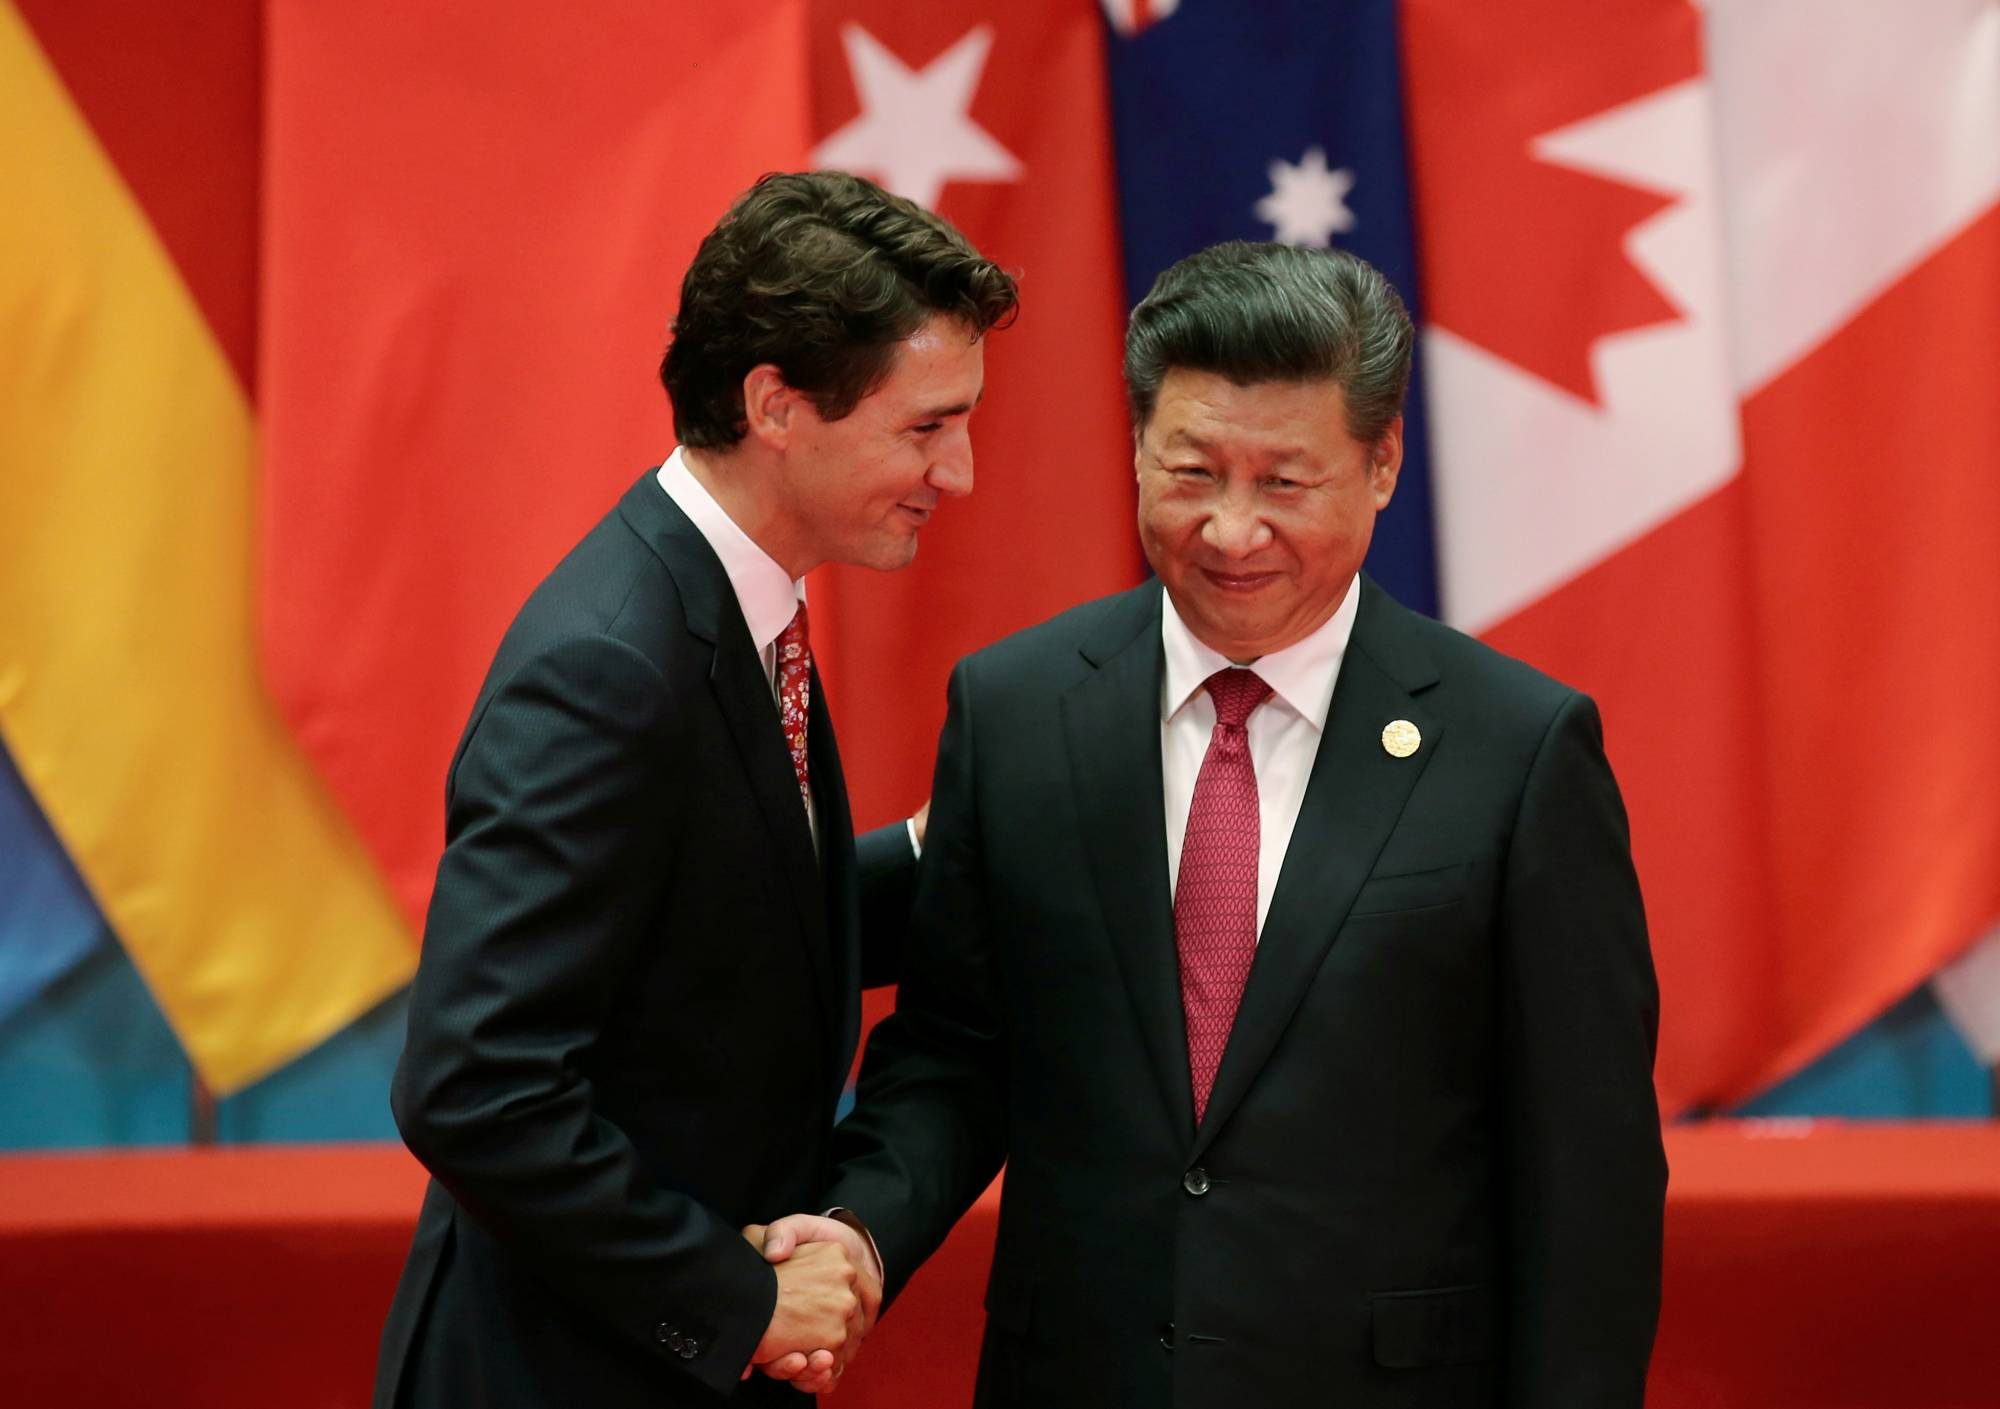 Chinese President Xi Jinping shakes hands with Canadian Prime Minister Justin Trudeau during the G20 summit in Hangzhou, China, in September 2016.  | REUTERS